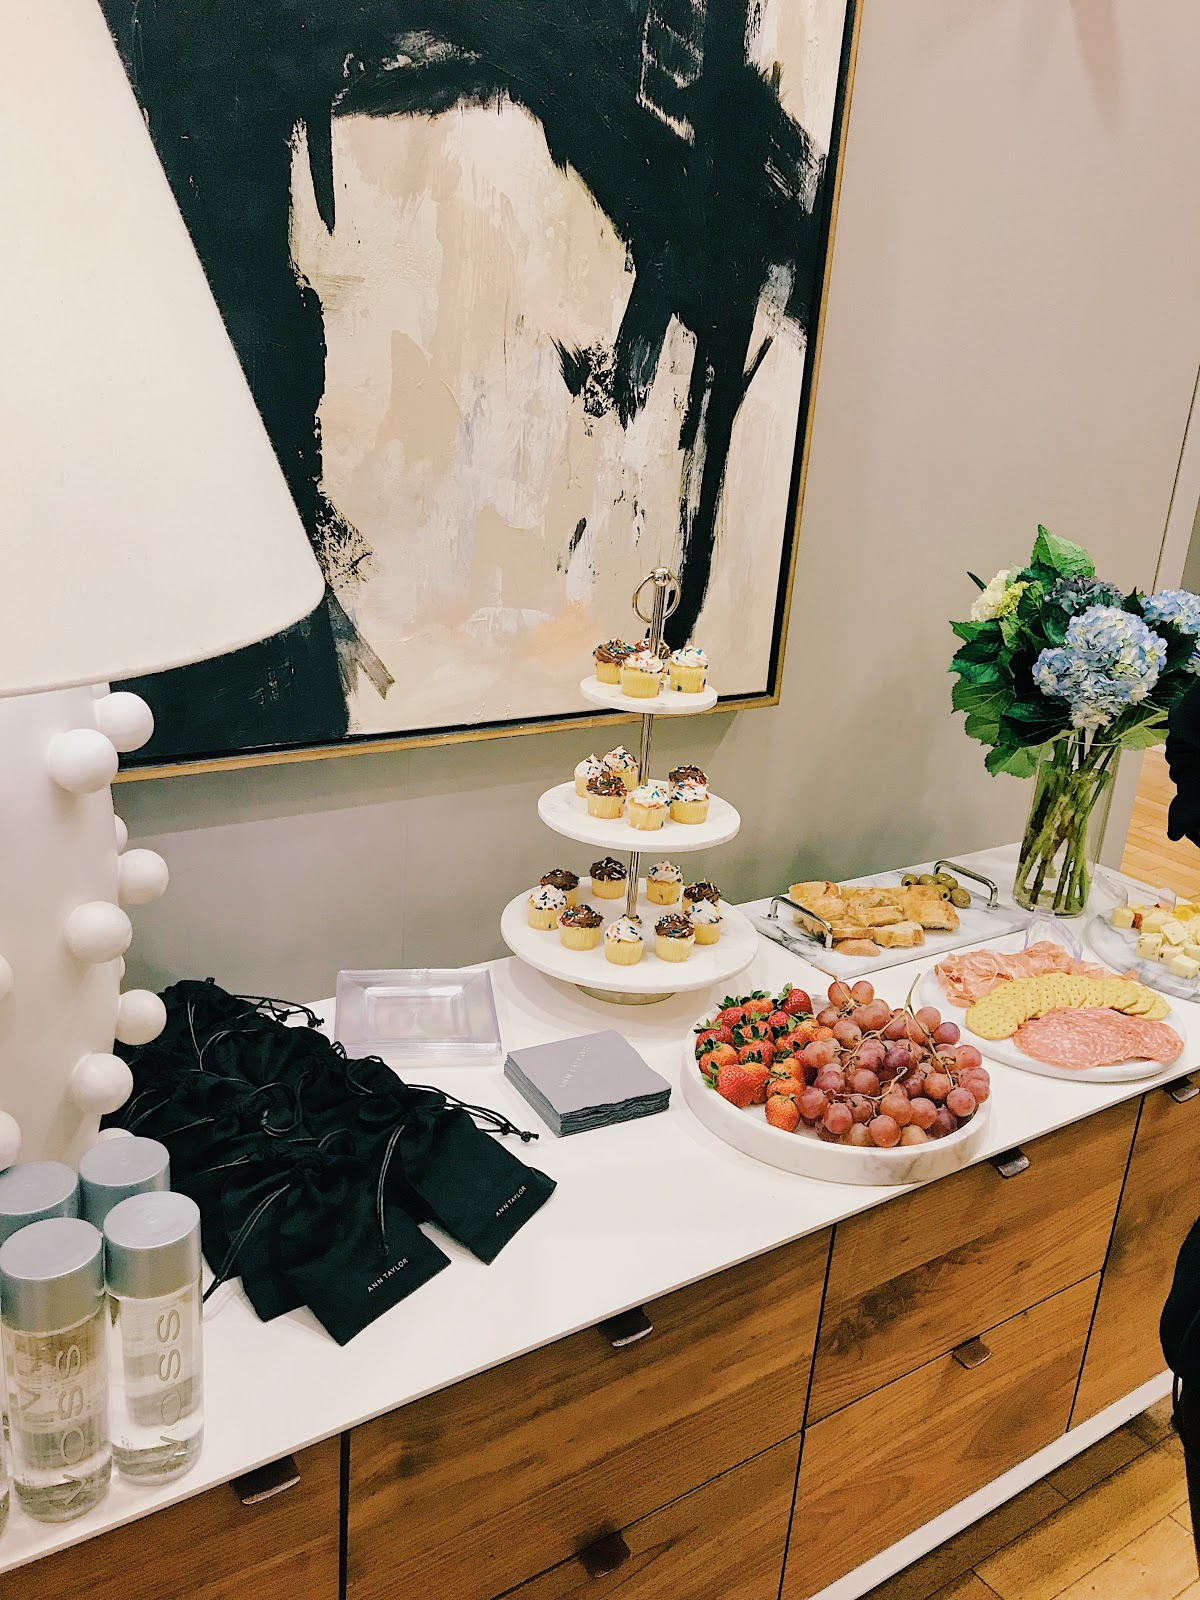 Ann Taylor networking event for bossbabes, professional working women in New York City networking